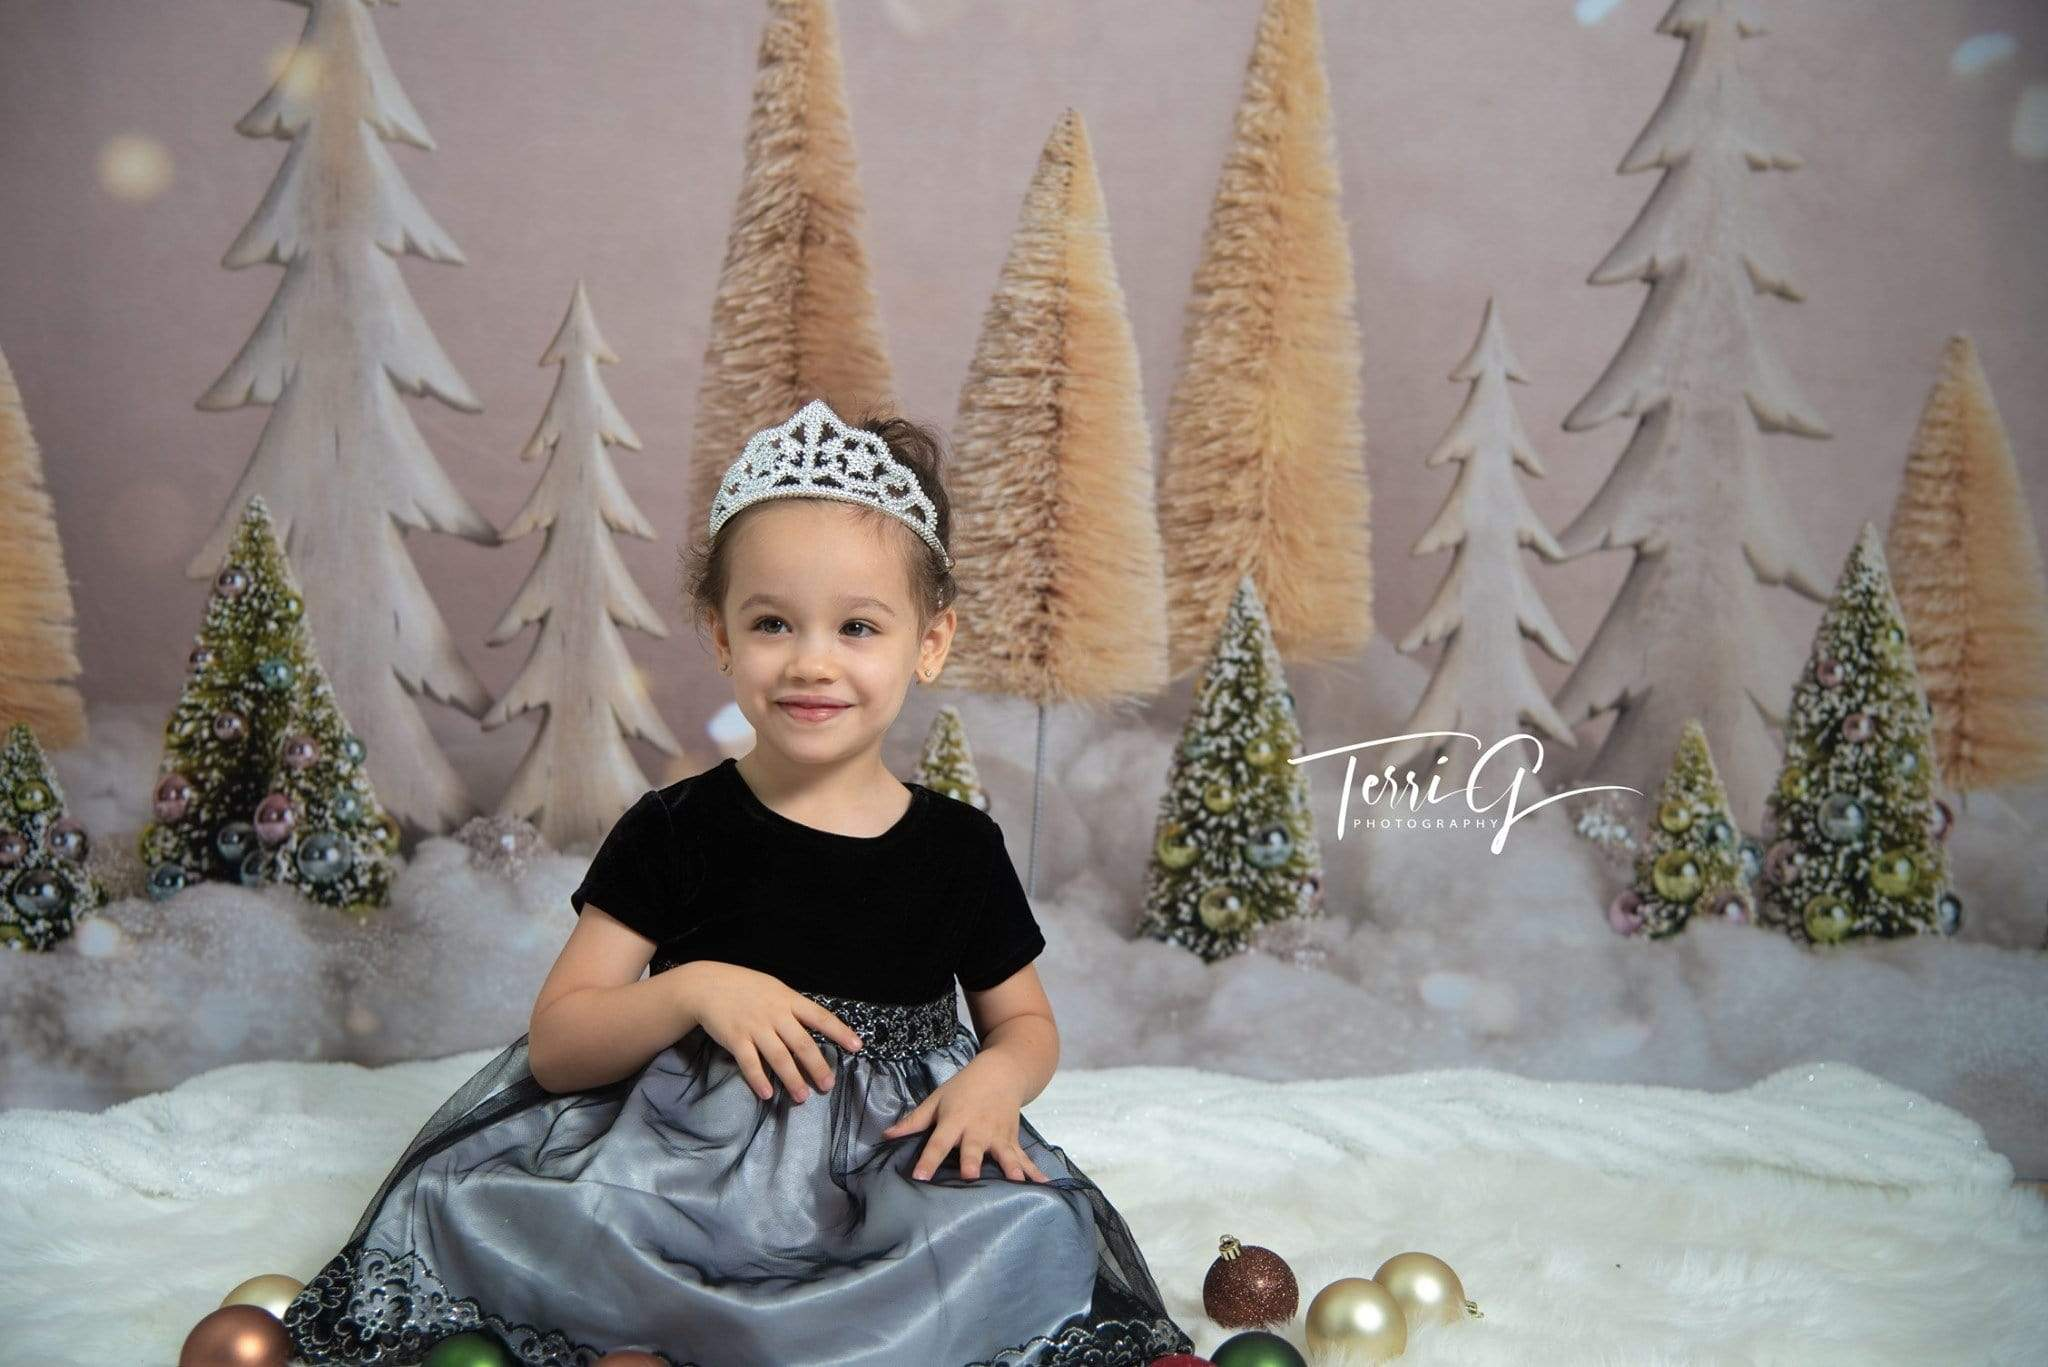 Load image into Gallery viewer, Kate Elegant Christmas Trees with Glitter Backdrop for Photography Designed By Mandy Ringe Photography